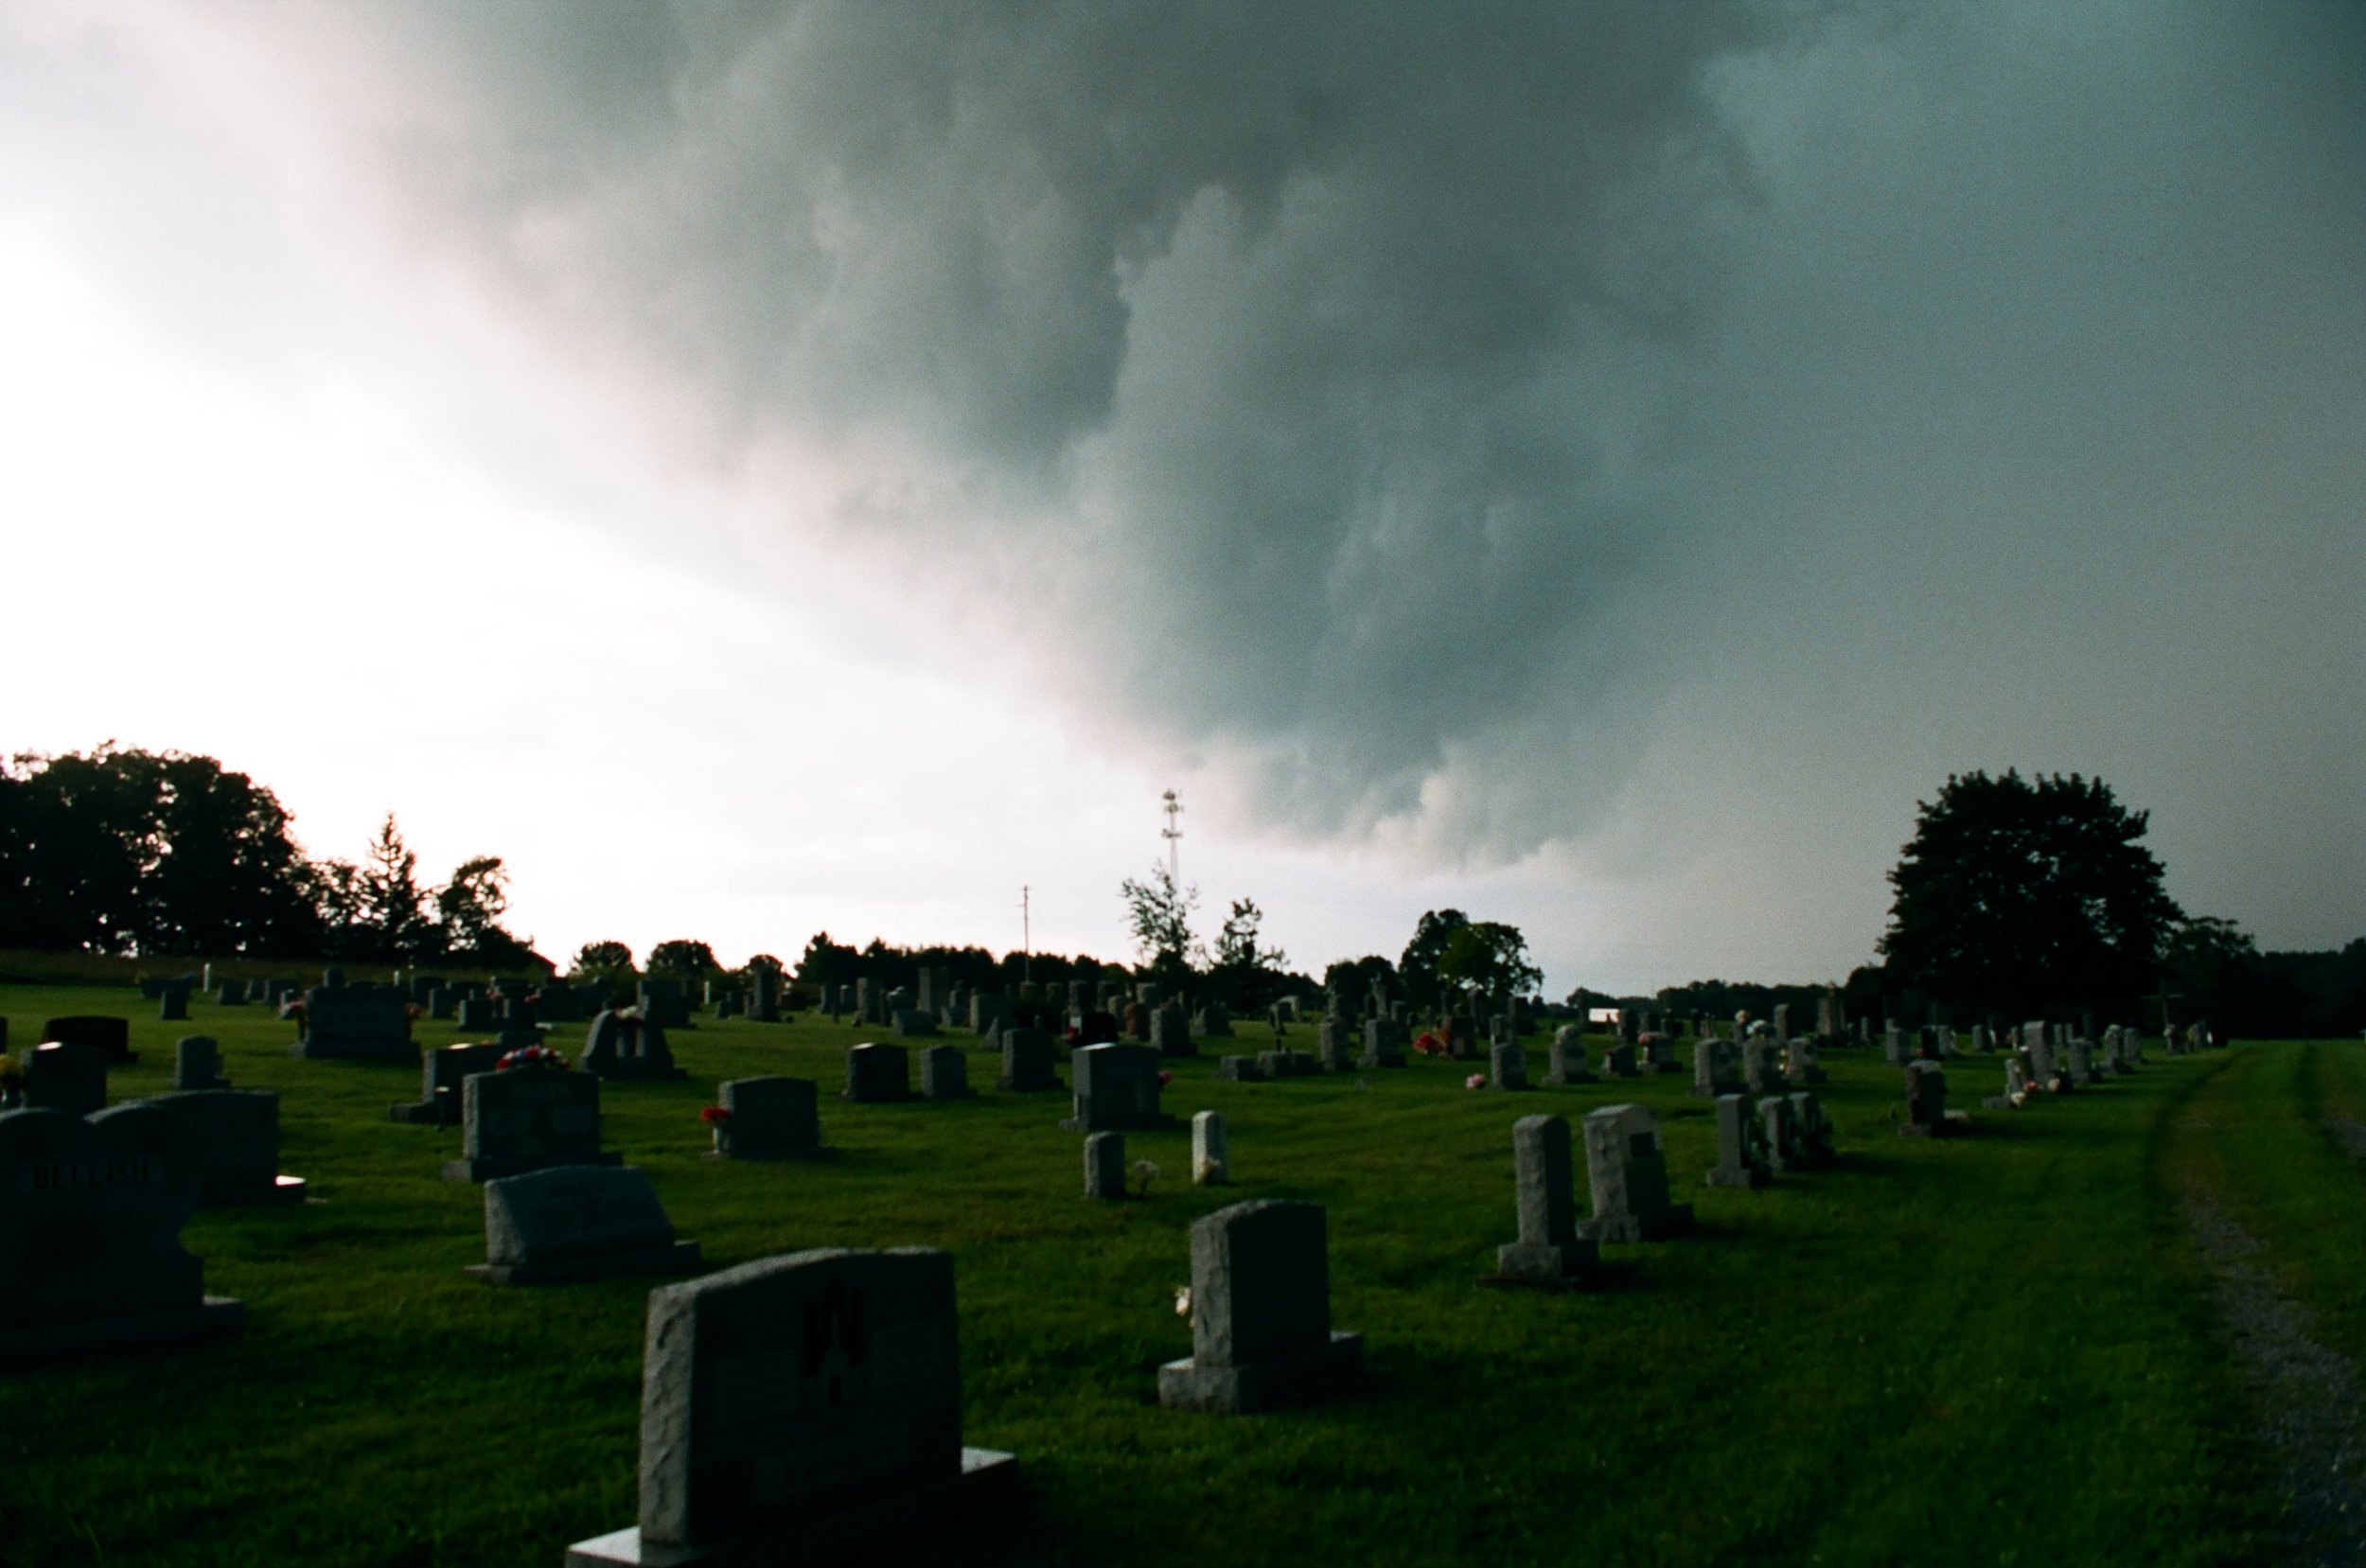 Shelf cloud at the edge of the precipitation just before strongest storm winds over cemetery on Kodak Portra 400